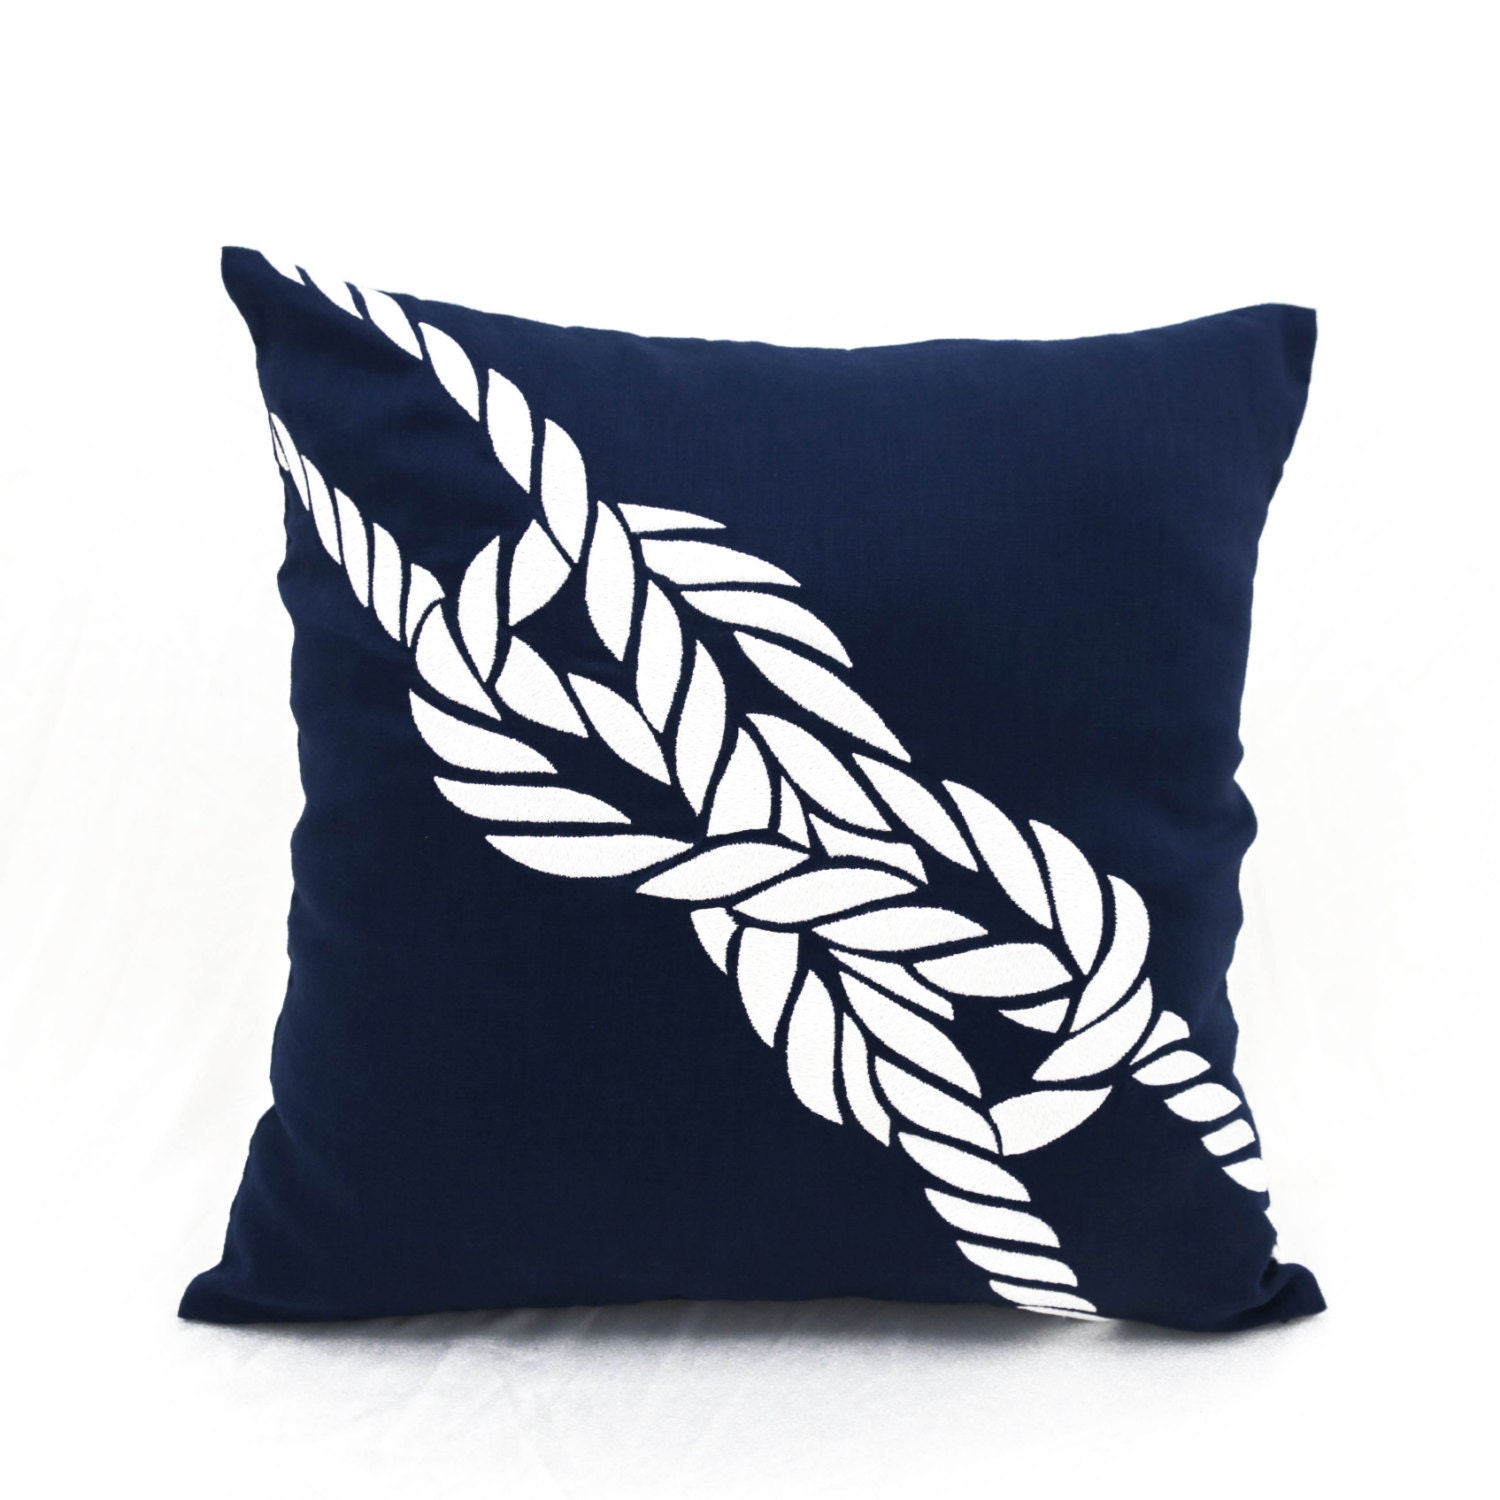 Nautical Coastal Throw Pillows : Navy Throw pillow Rope Pillow Nautical pillow covers